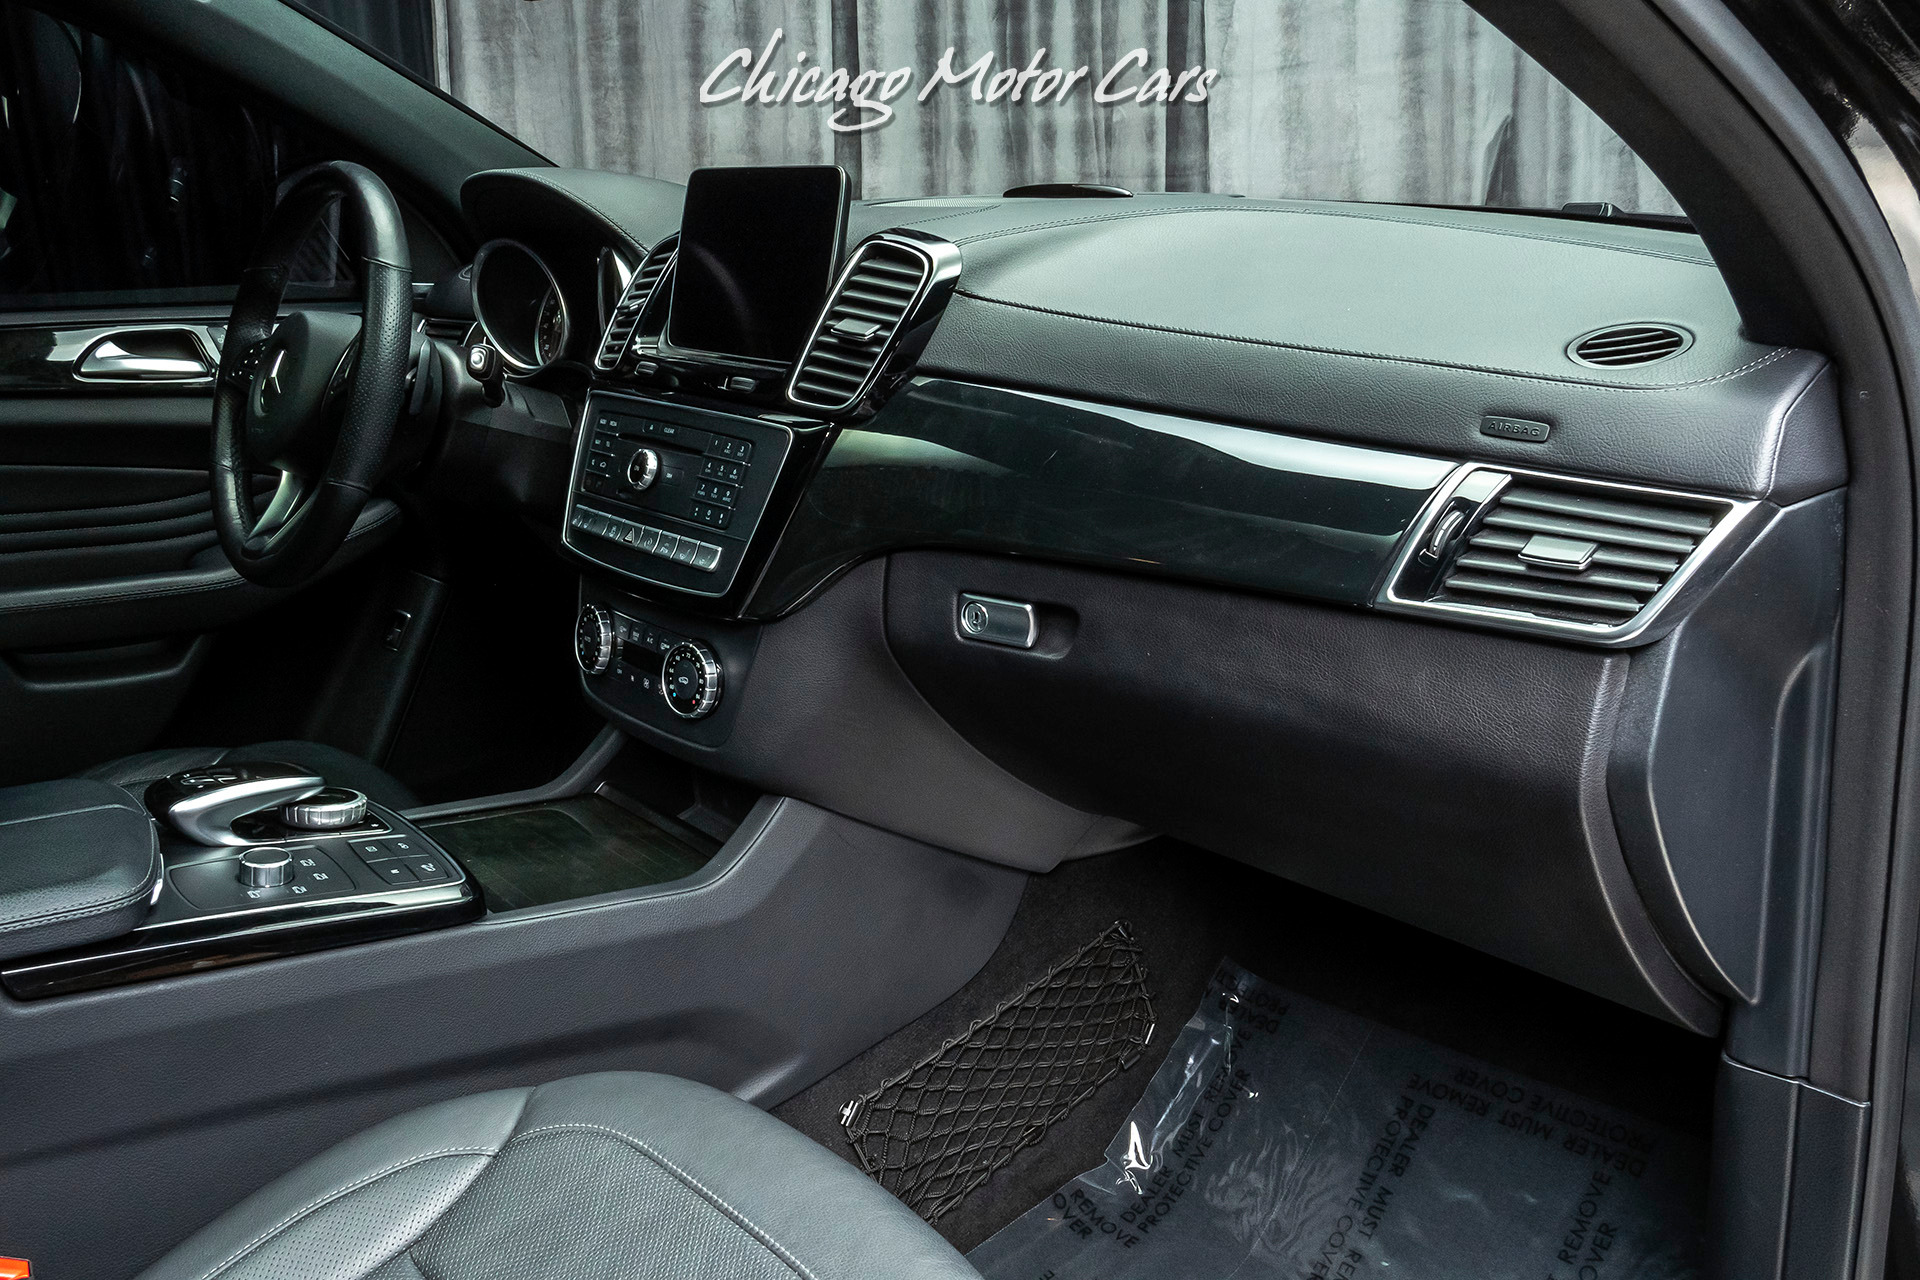 Used-2017-Mercedes-Benz-GLE43-AMG-AWD-SUV-LOADED-WITH-FACTORY-OPTIONS